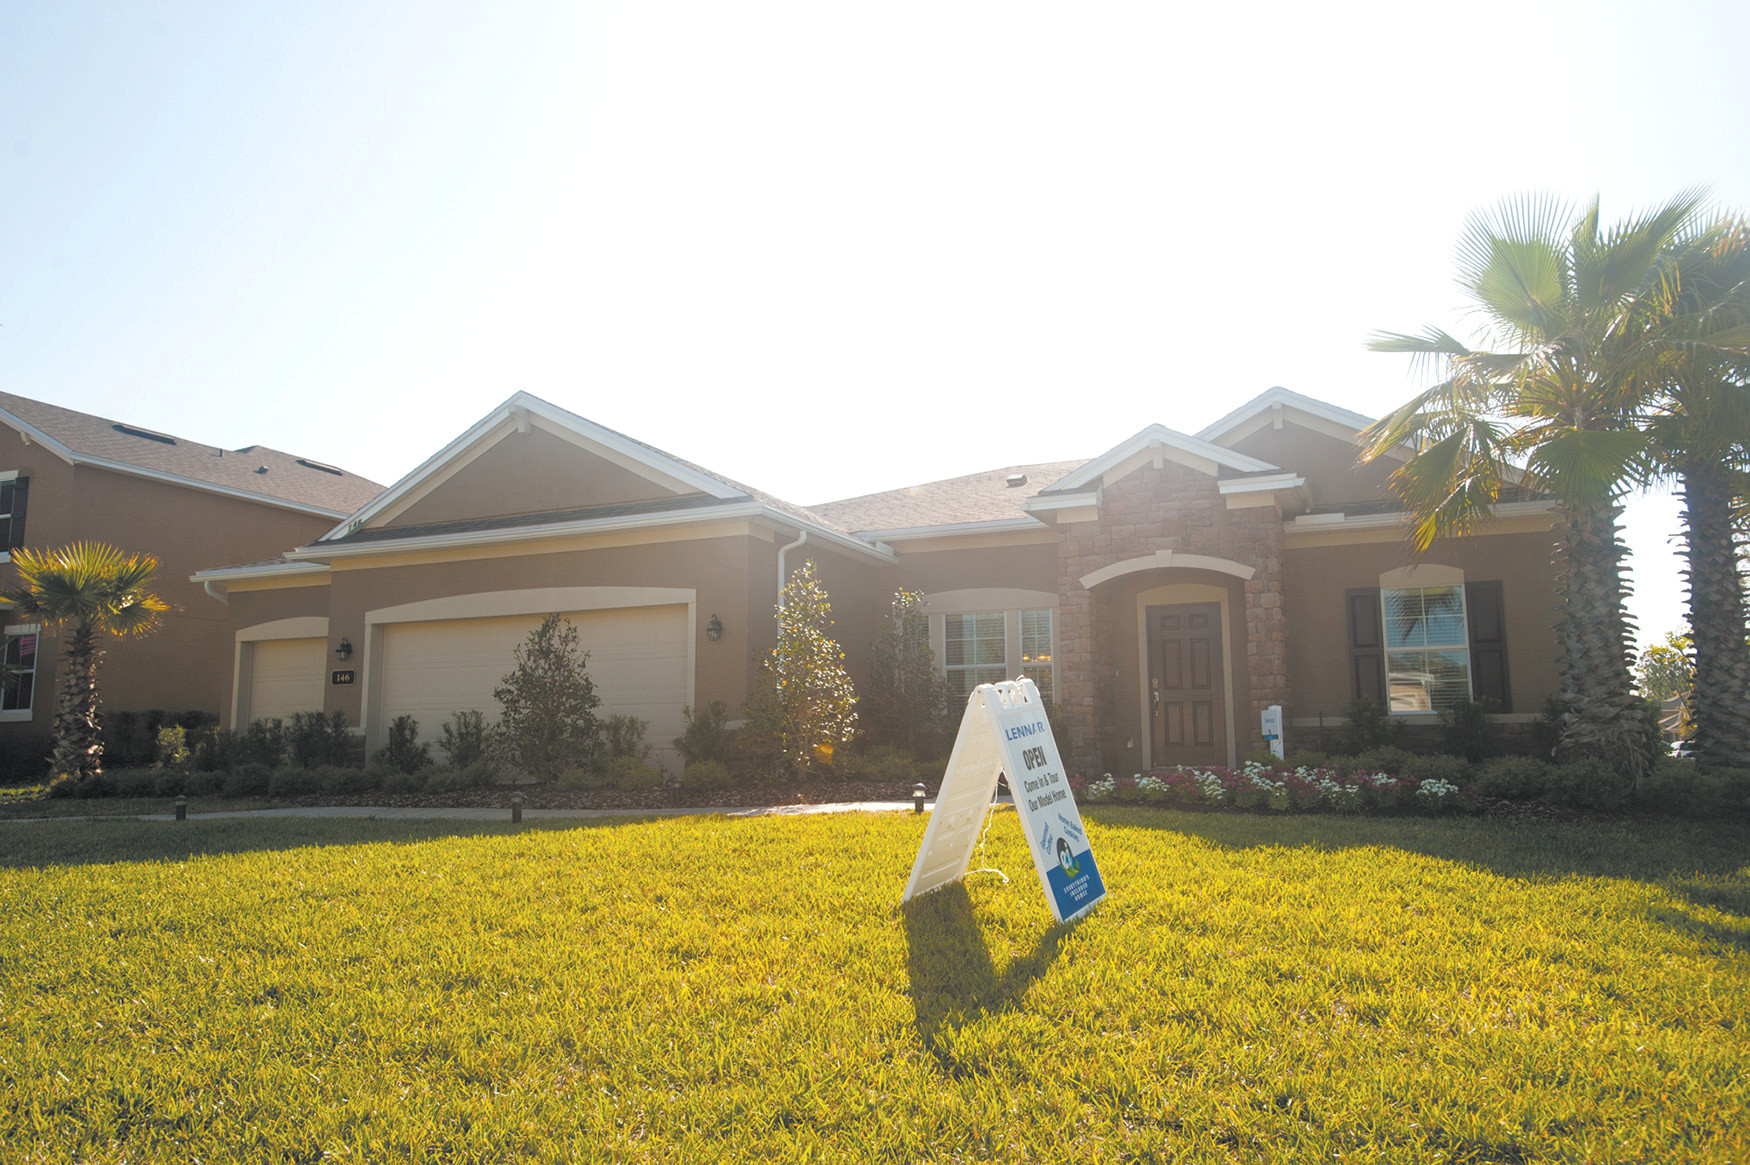 14. Lennar Homes LLC